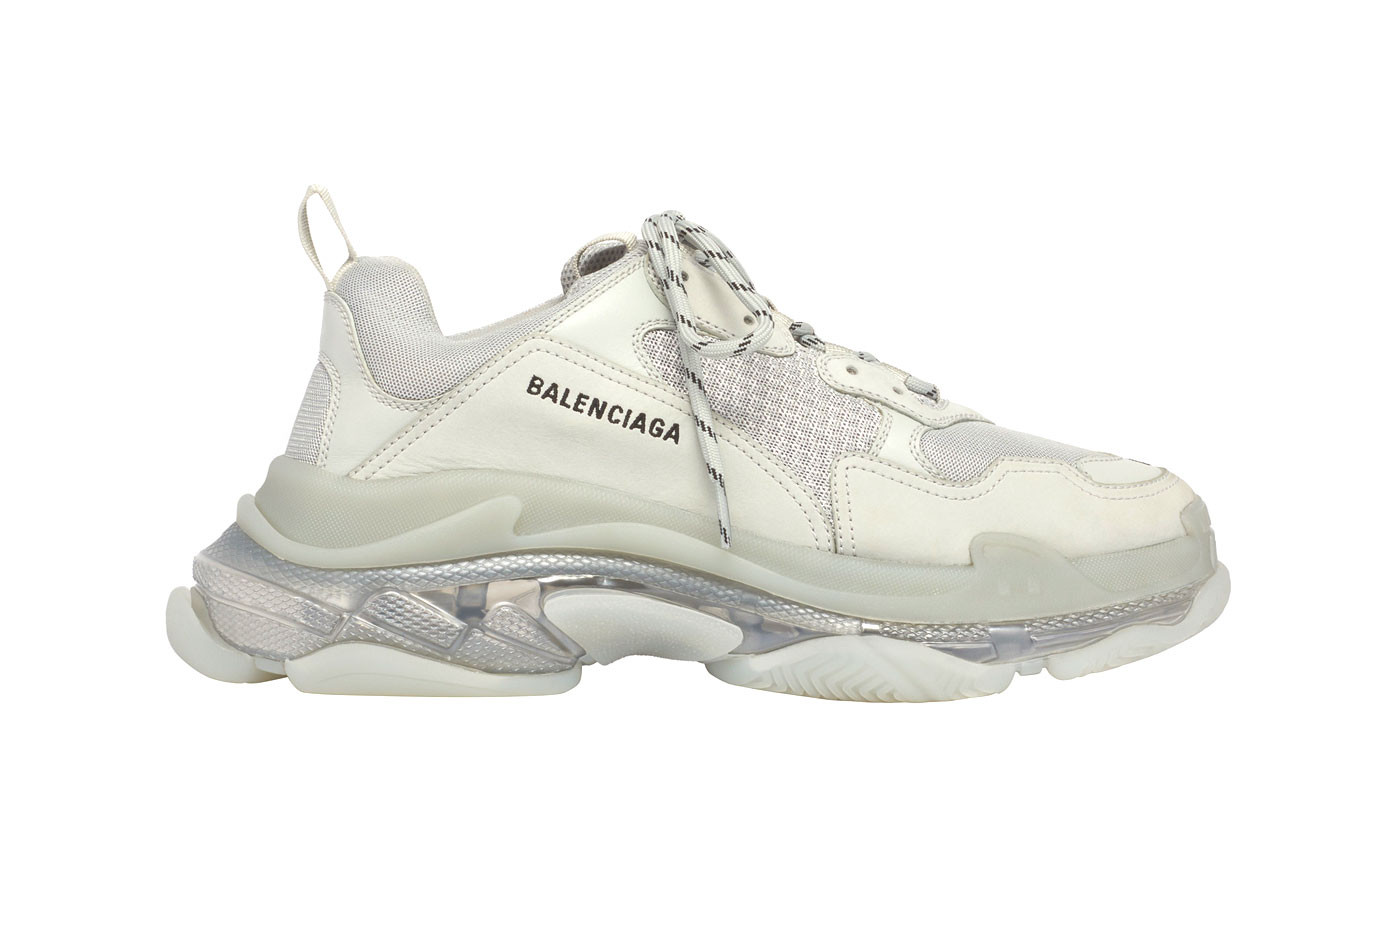 Balenciaga Revamps the Triple S Sneakers with Clear Air Unit